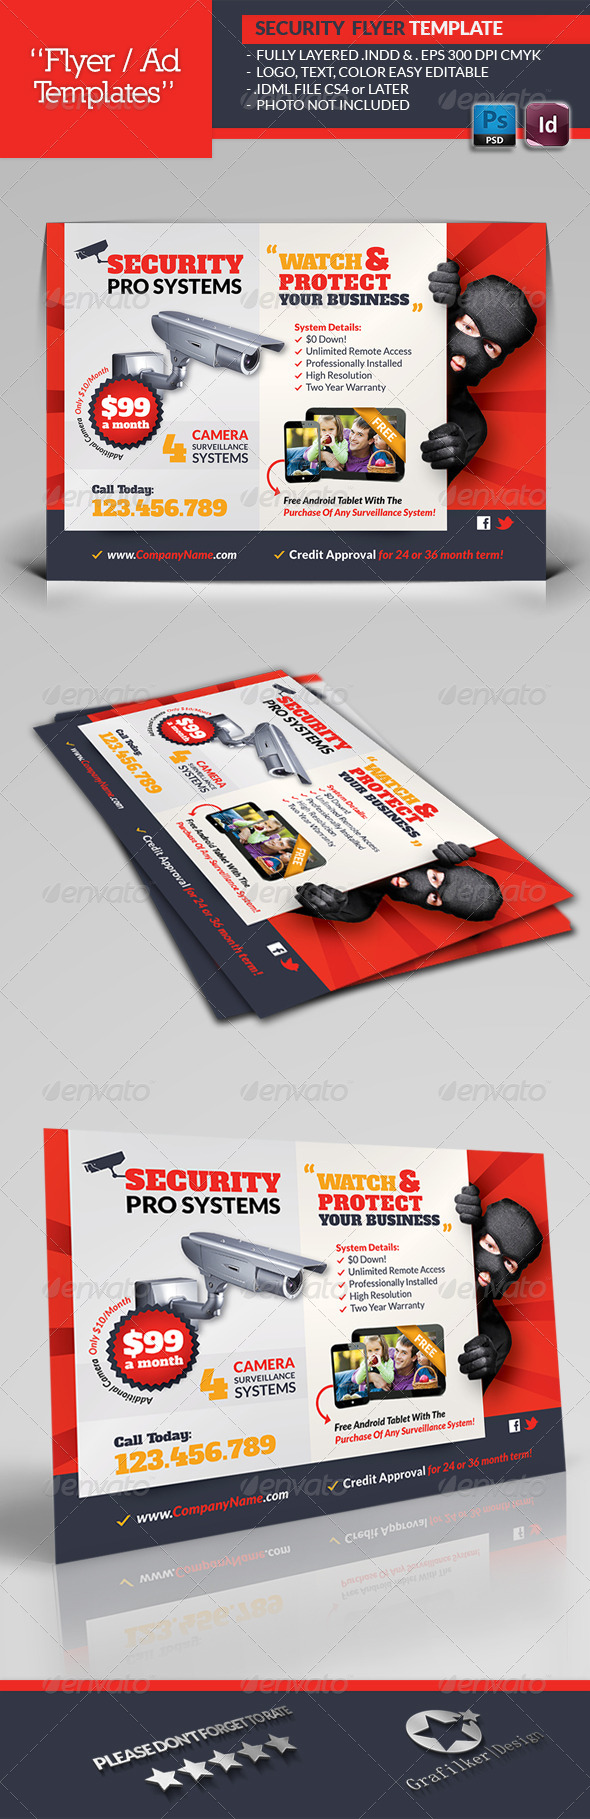 Security Systems Flyer Template - Corporate Flyers